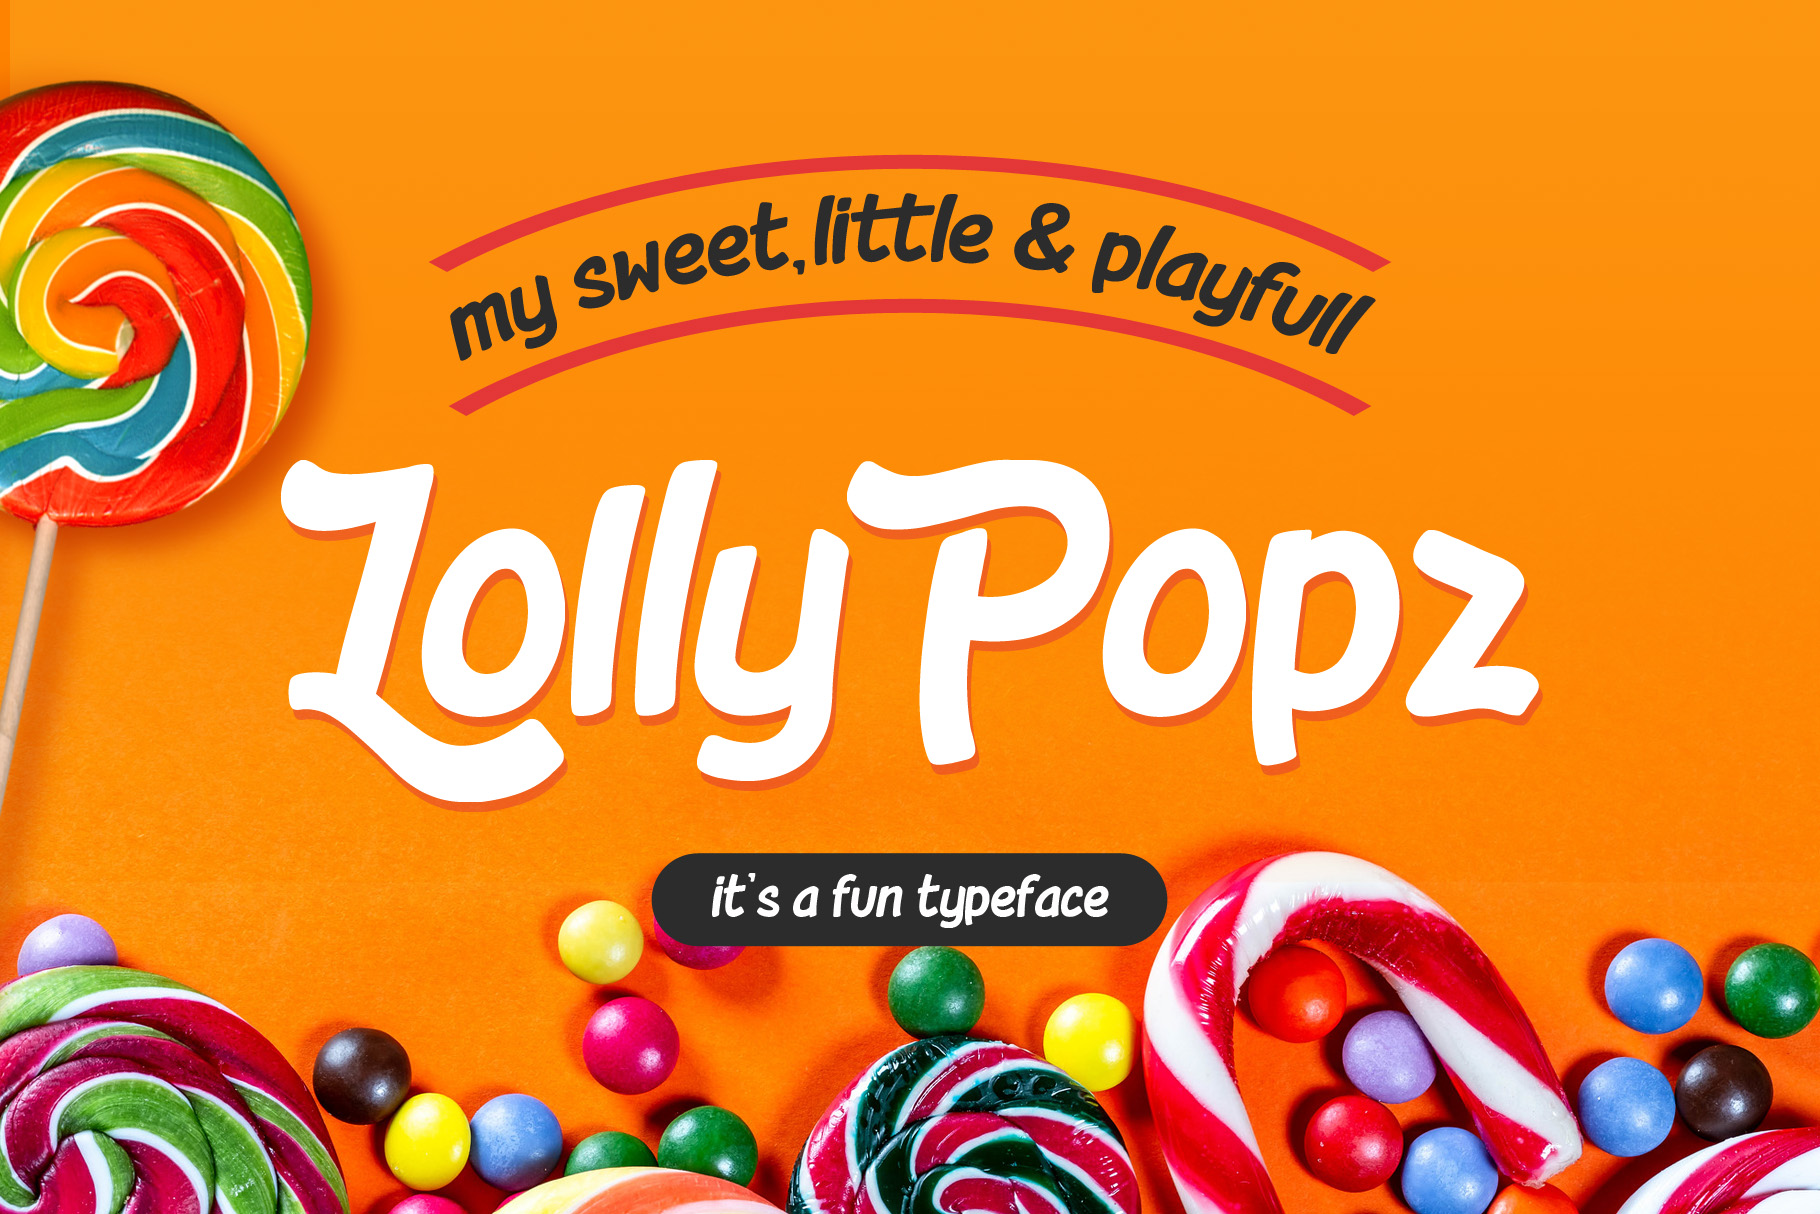 Lolly Popz example image 1